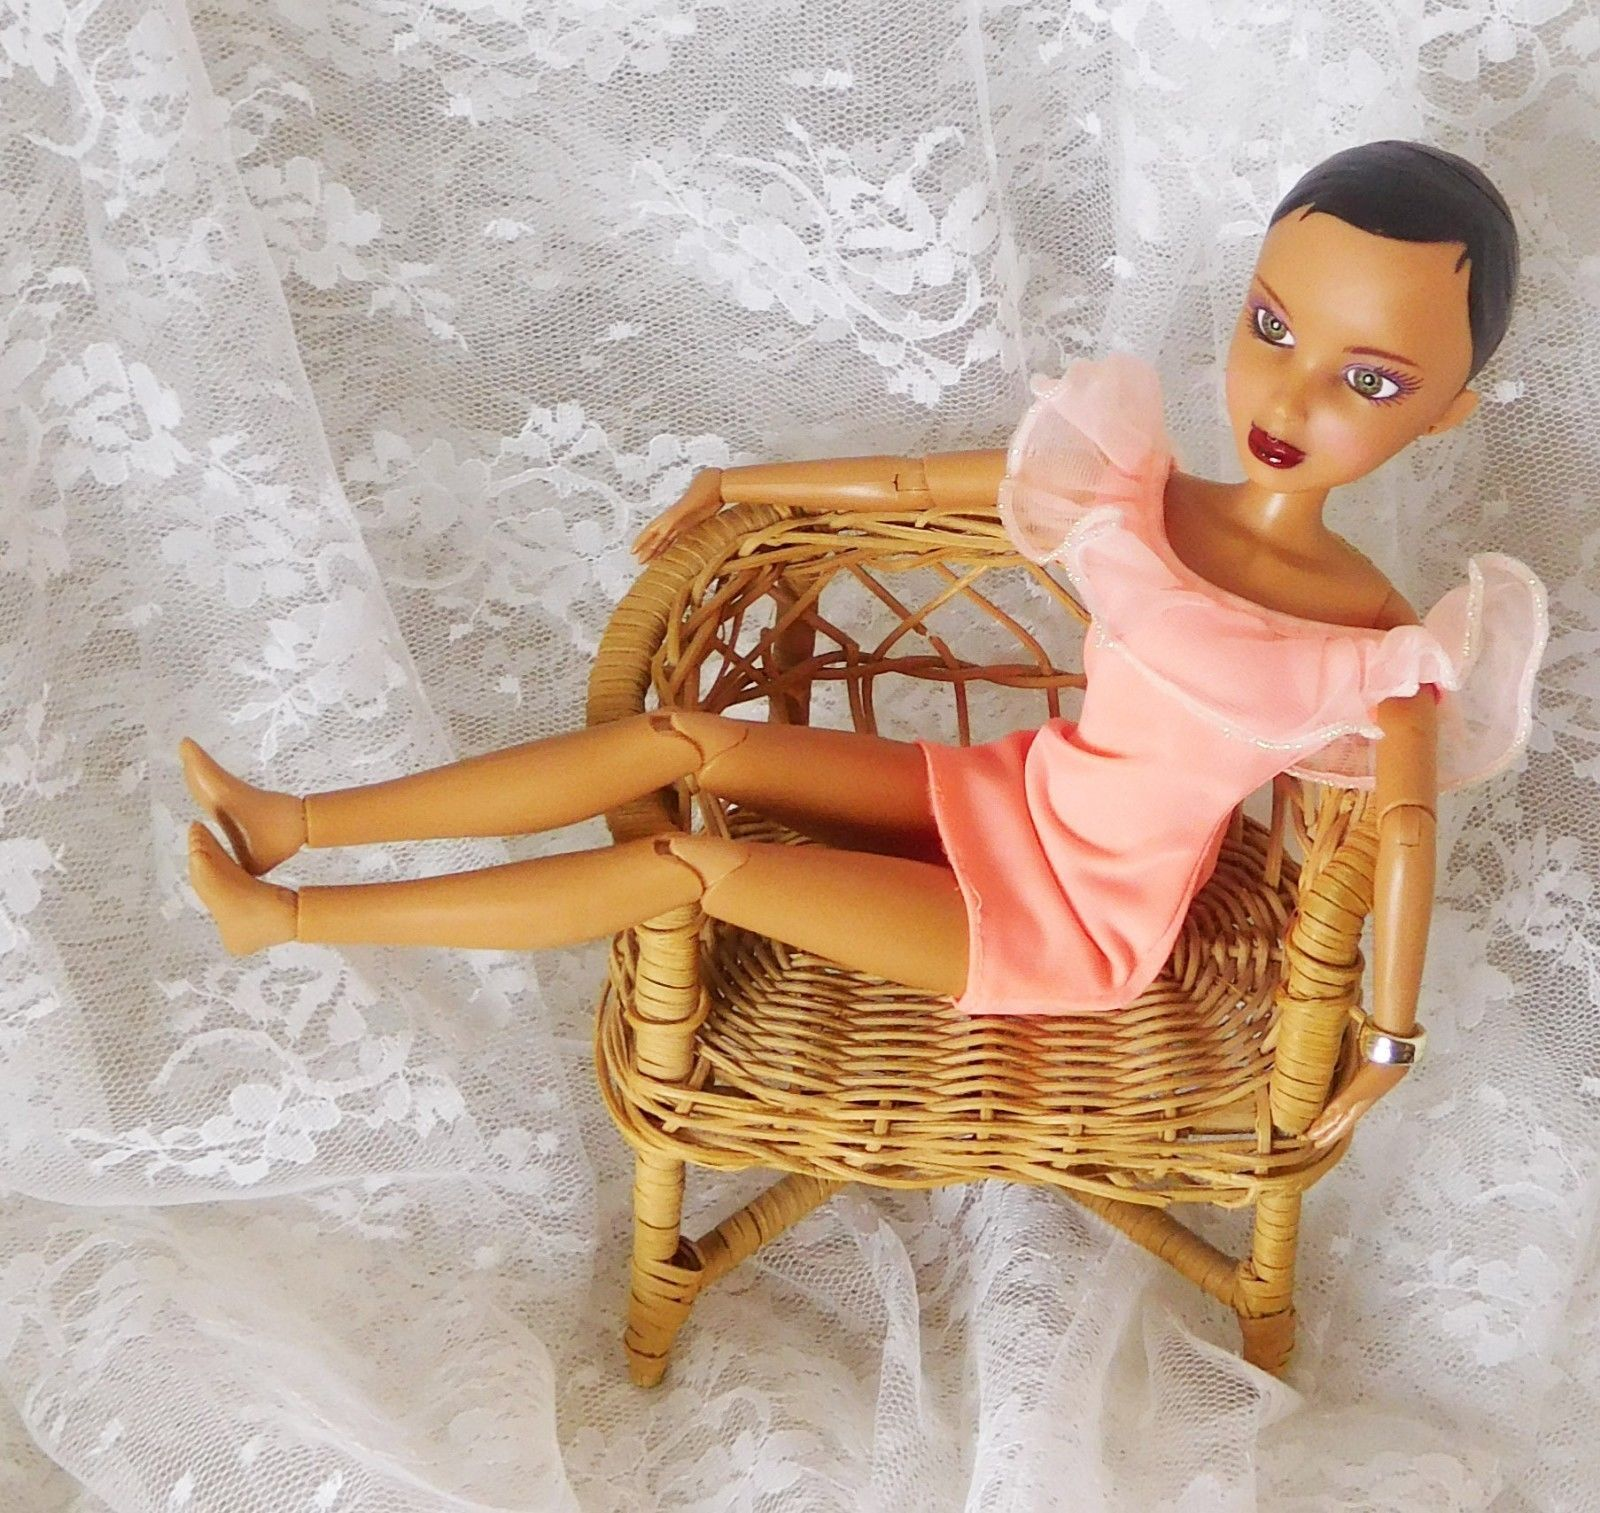 "Primary image for 2009 Spin Master Ltd LIV Doll 11 1/2"" with Dress #91026MPG - Fully Articulated"